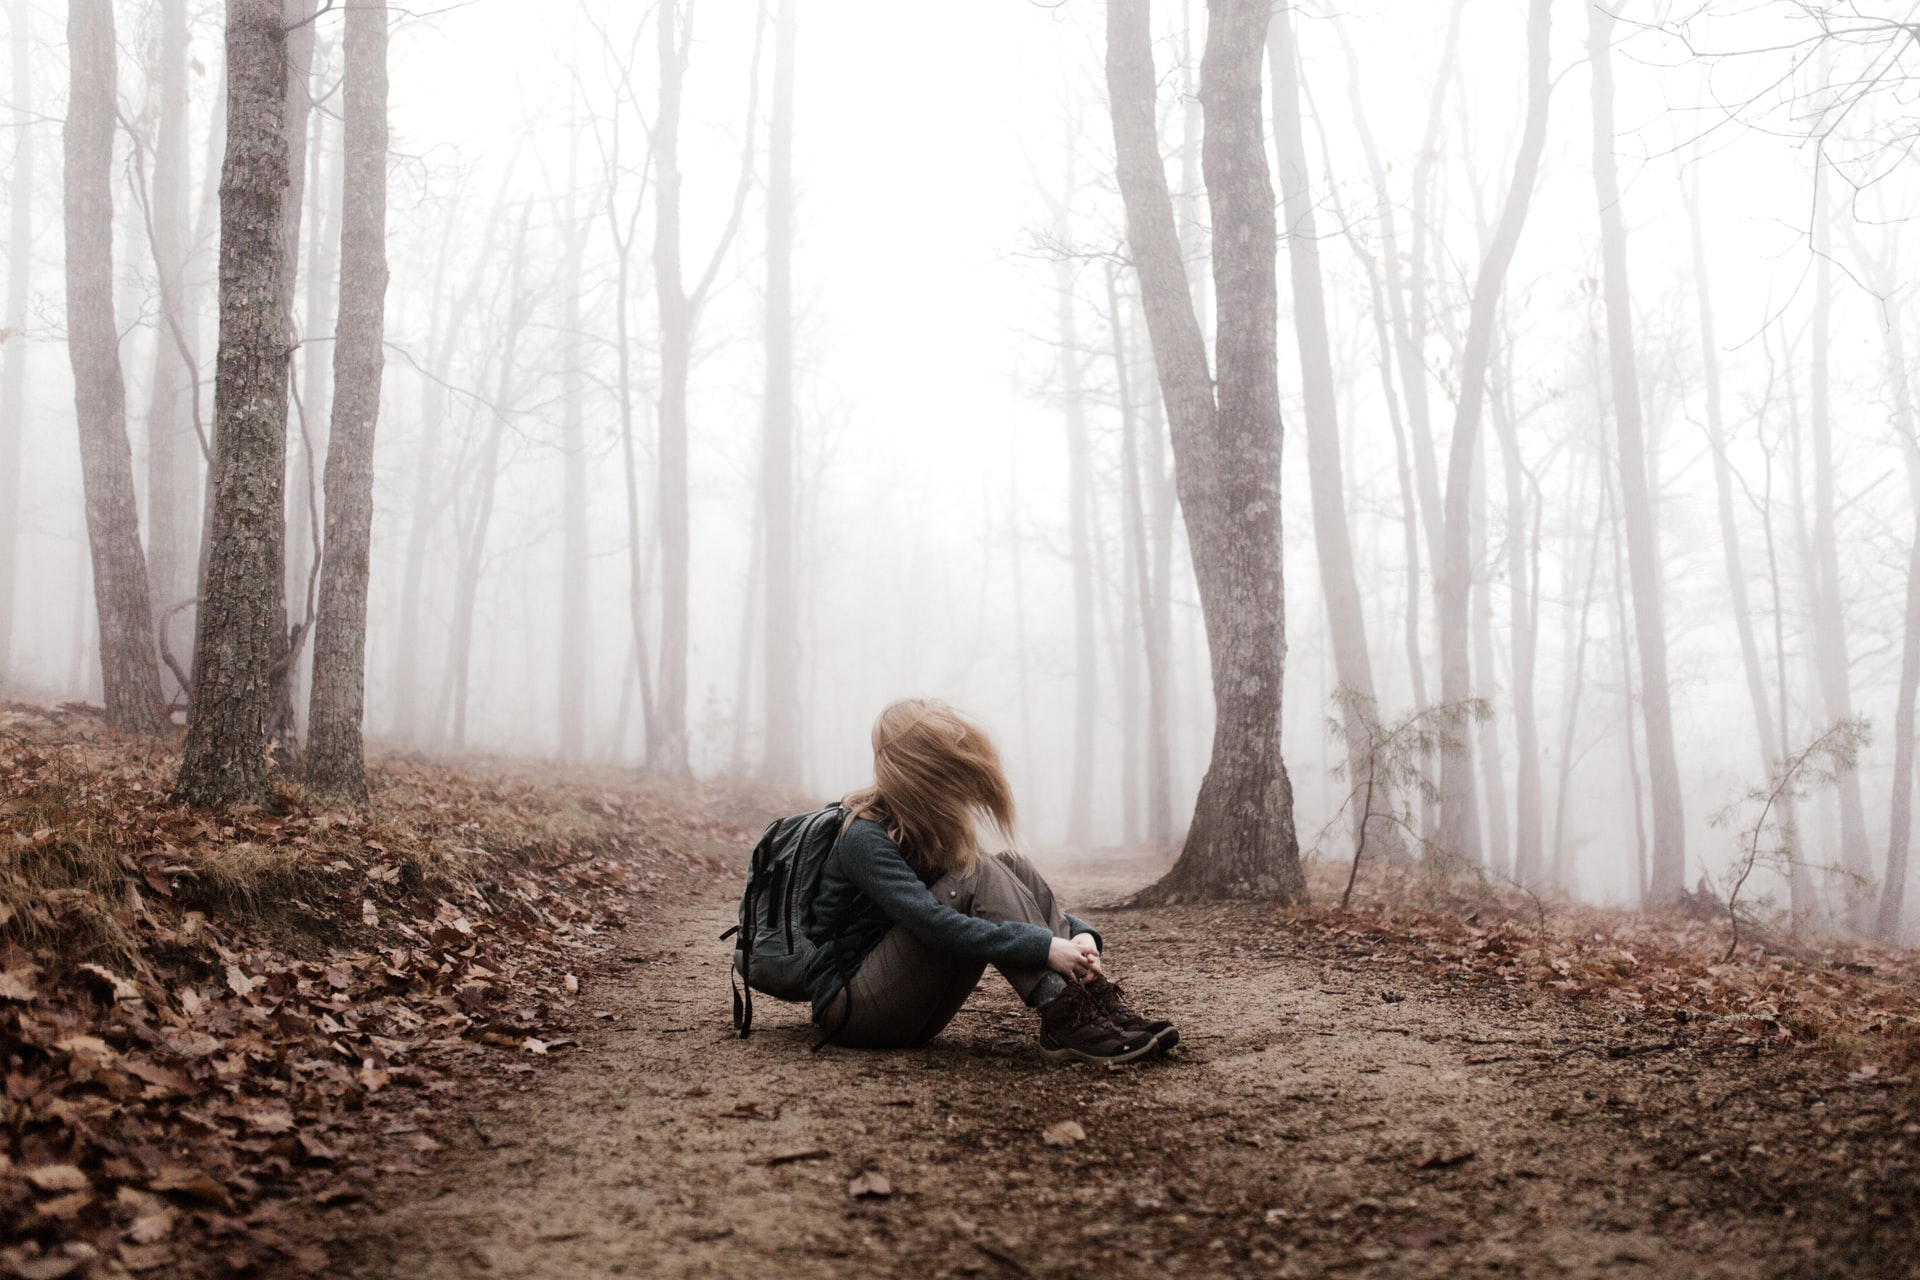 photographic storytelling; person sitting on floor alone in misty forest